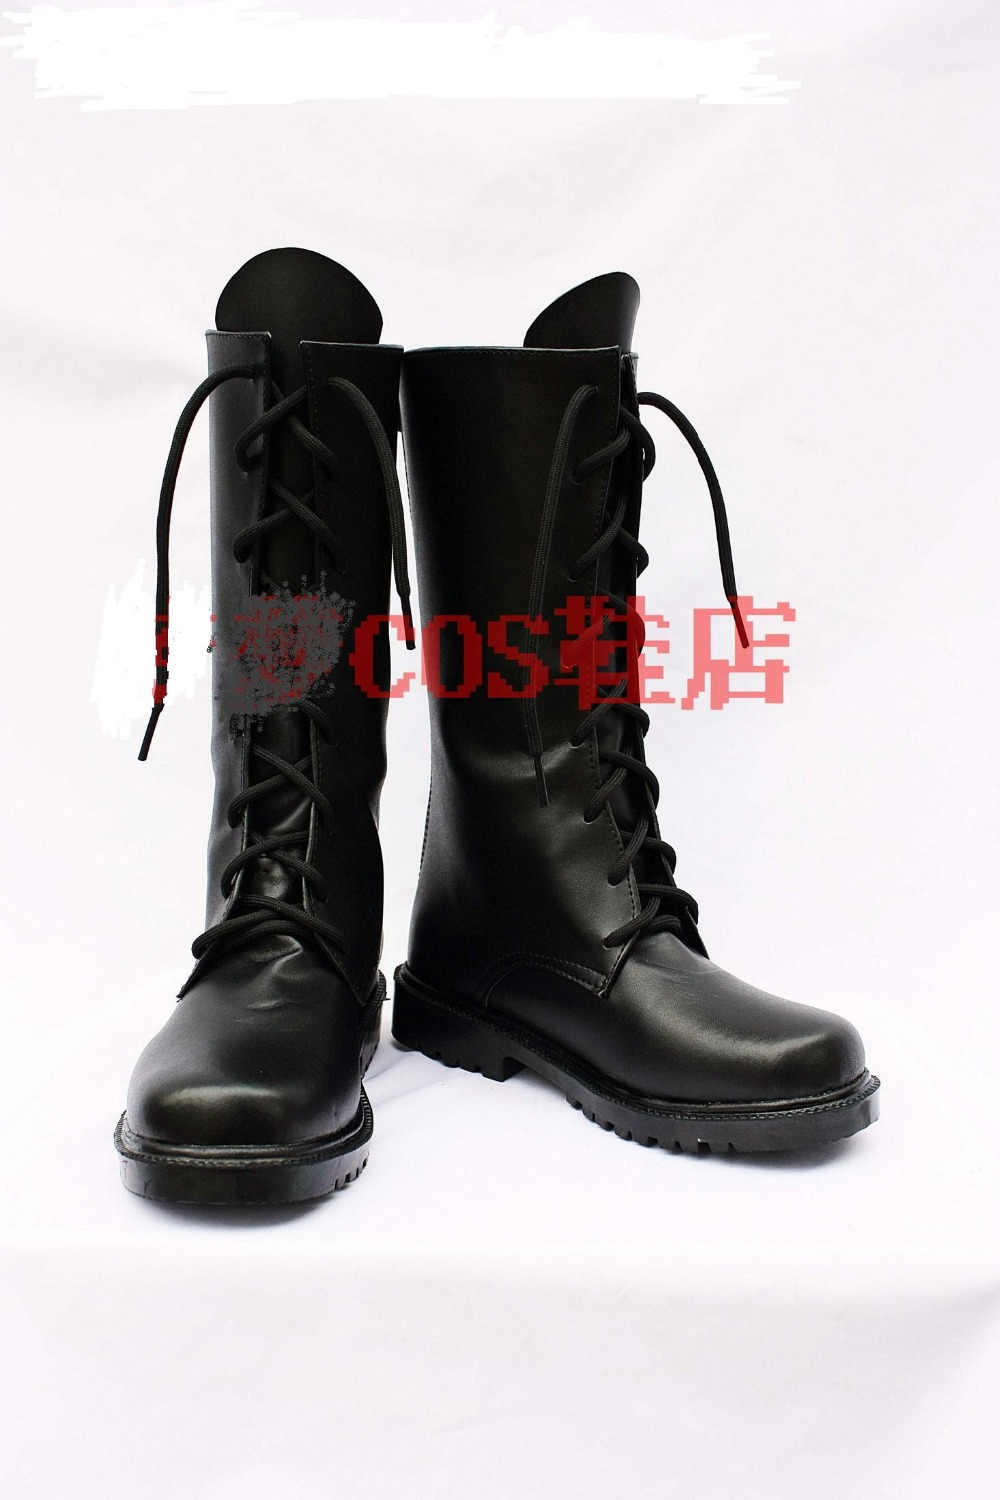 Anime Studio Deen At Last Cosplay Shoes Boots For Halloween Carnival